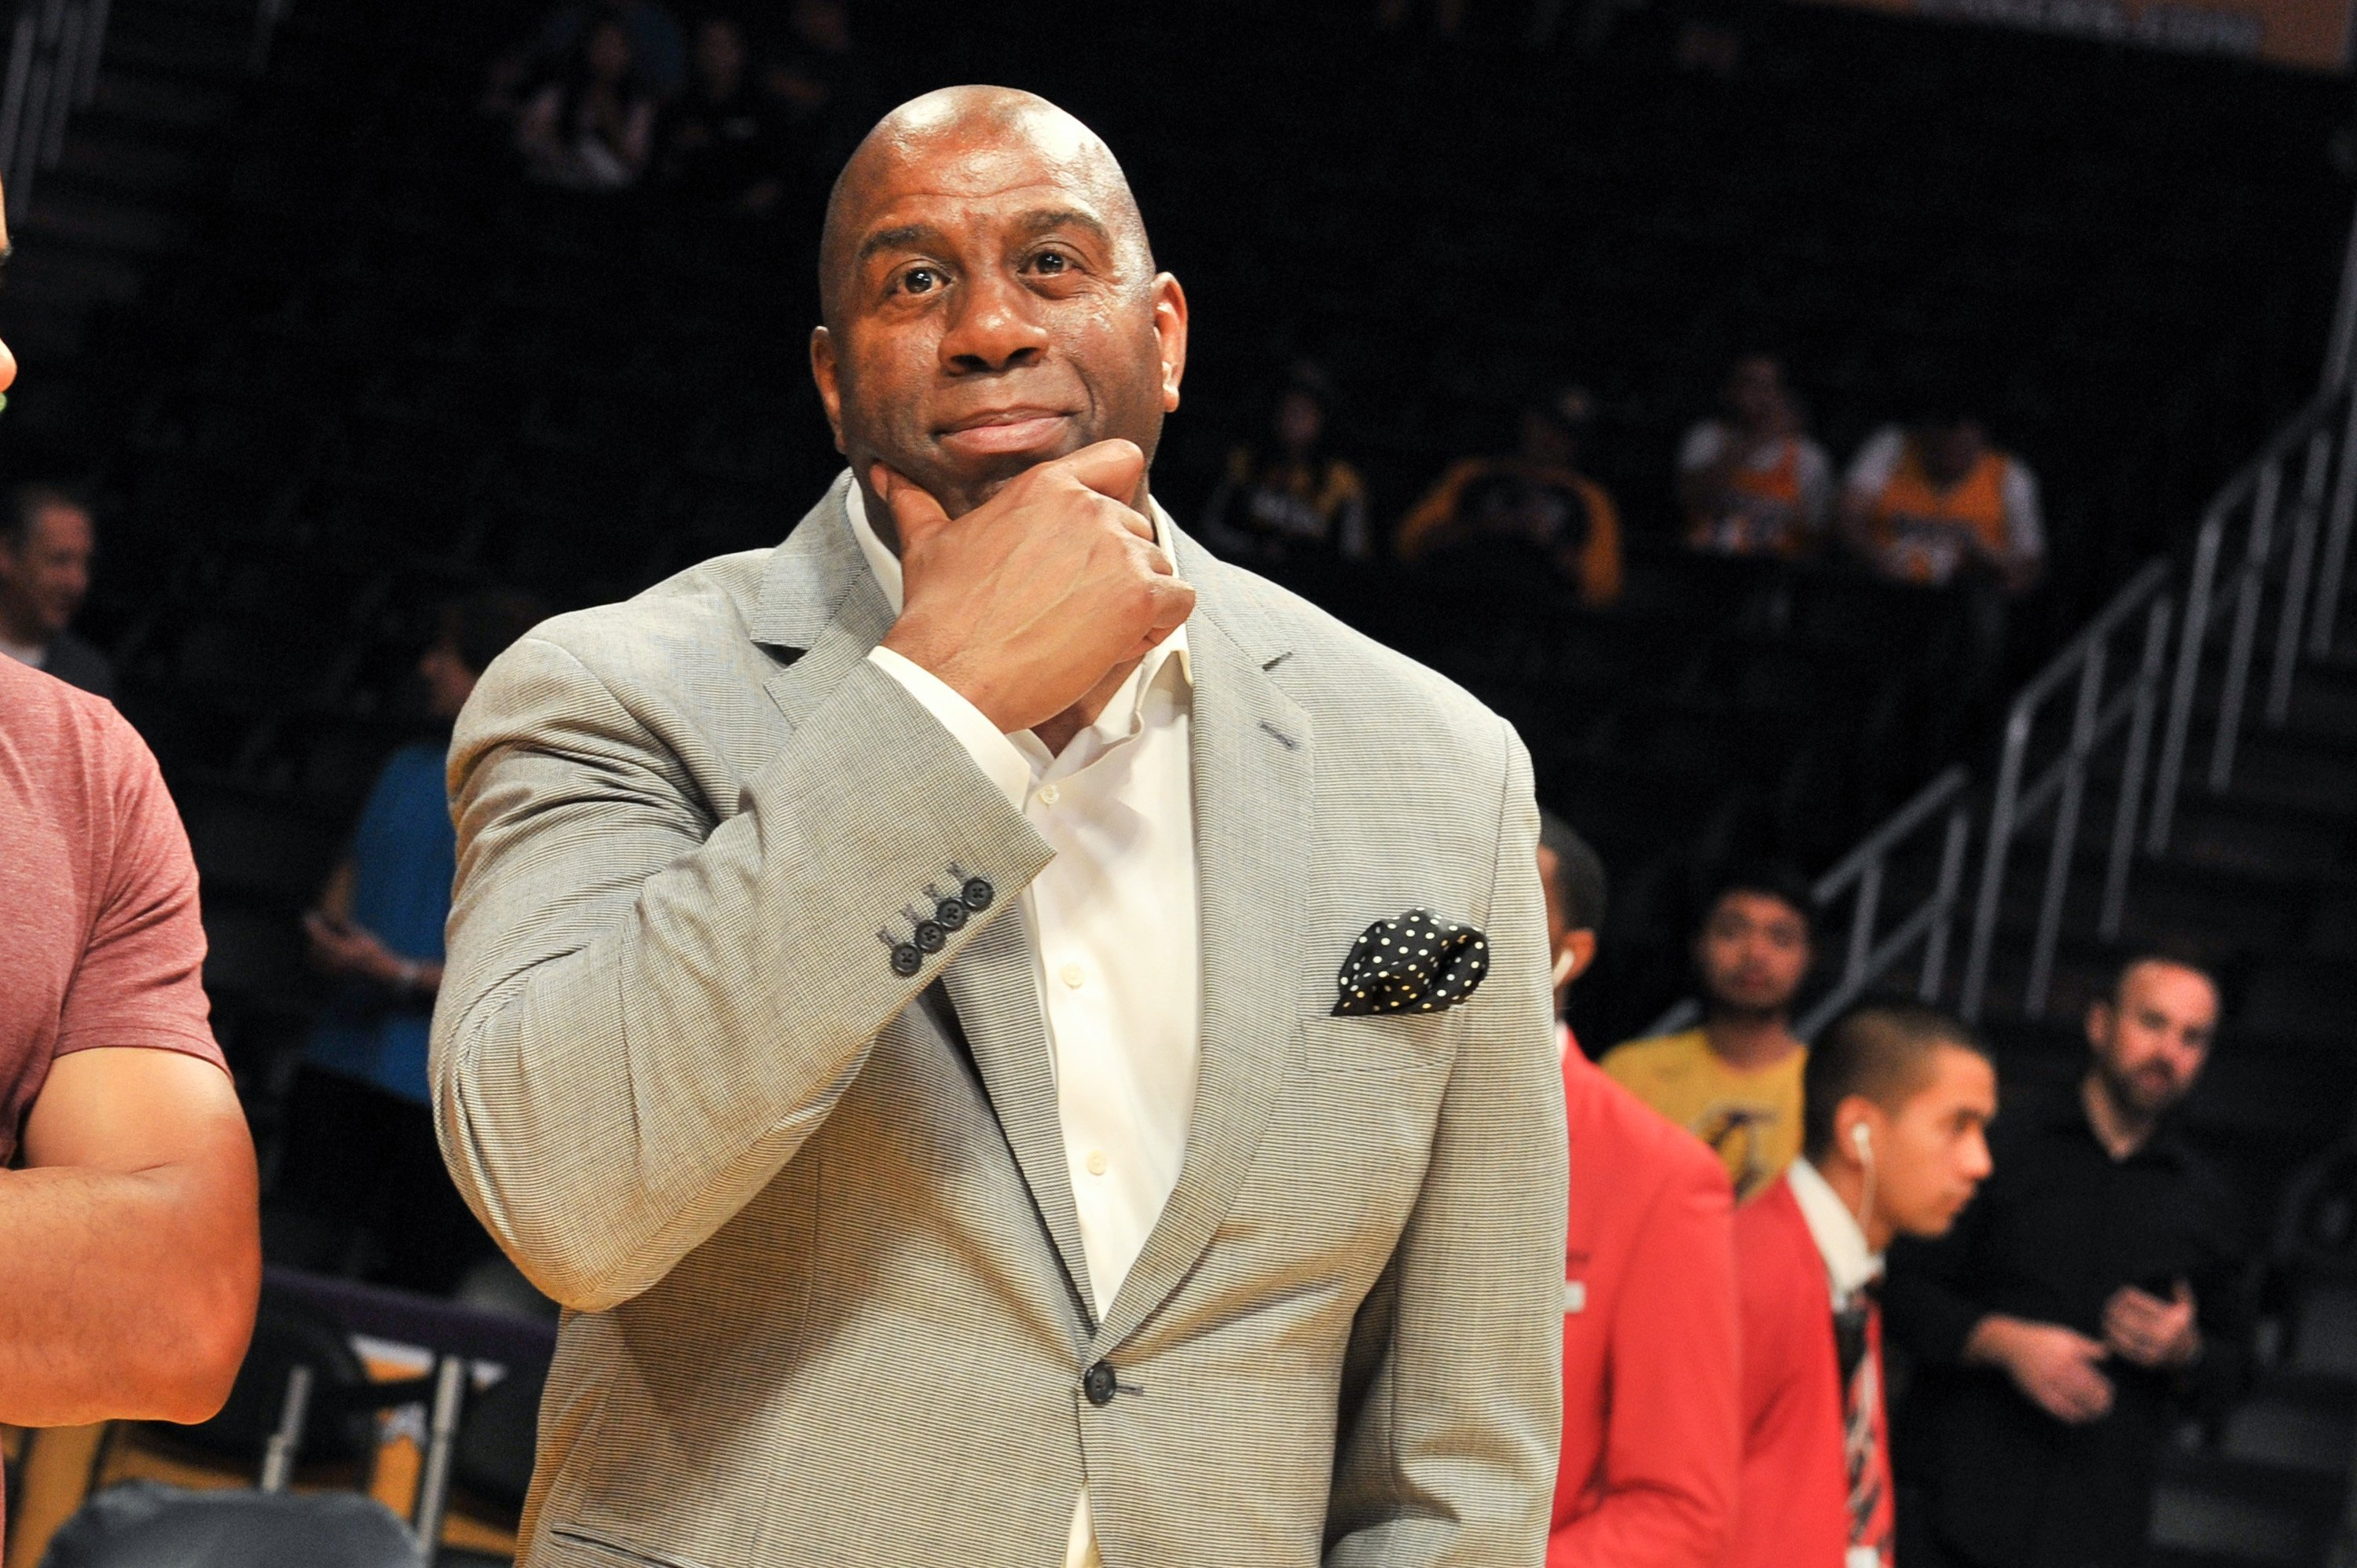 Earvin Magic Johnson attends a basketball game | Photo: Getty Images